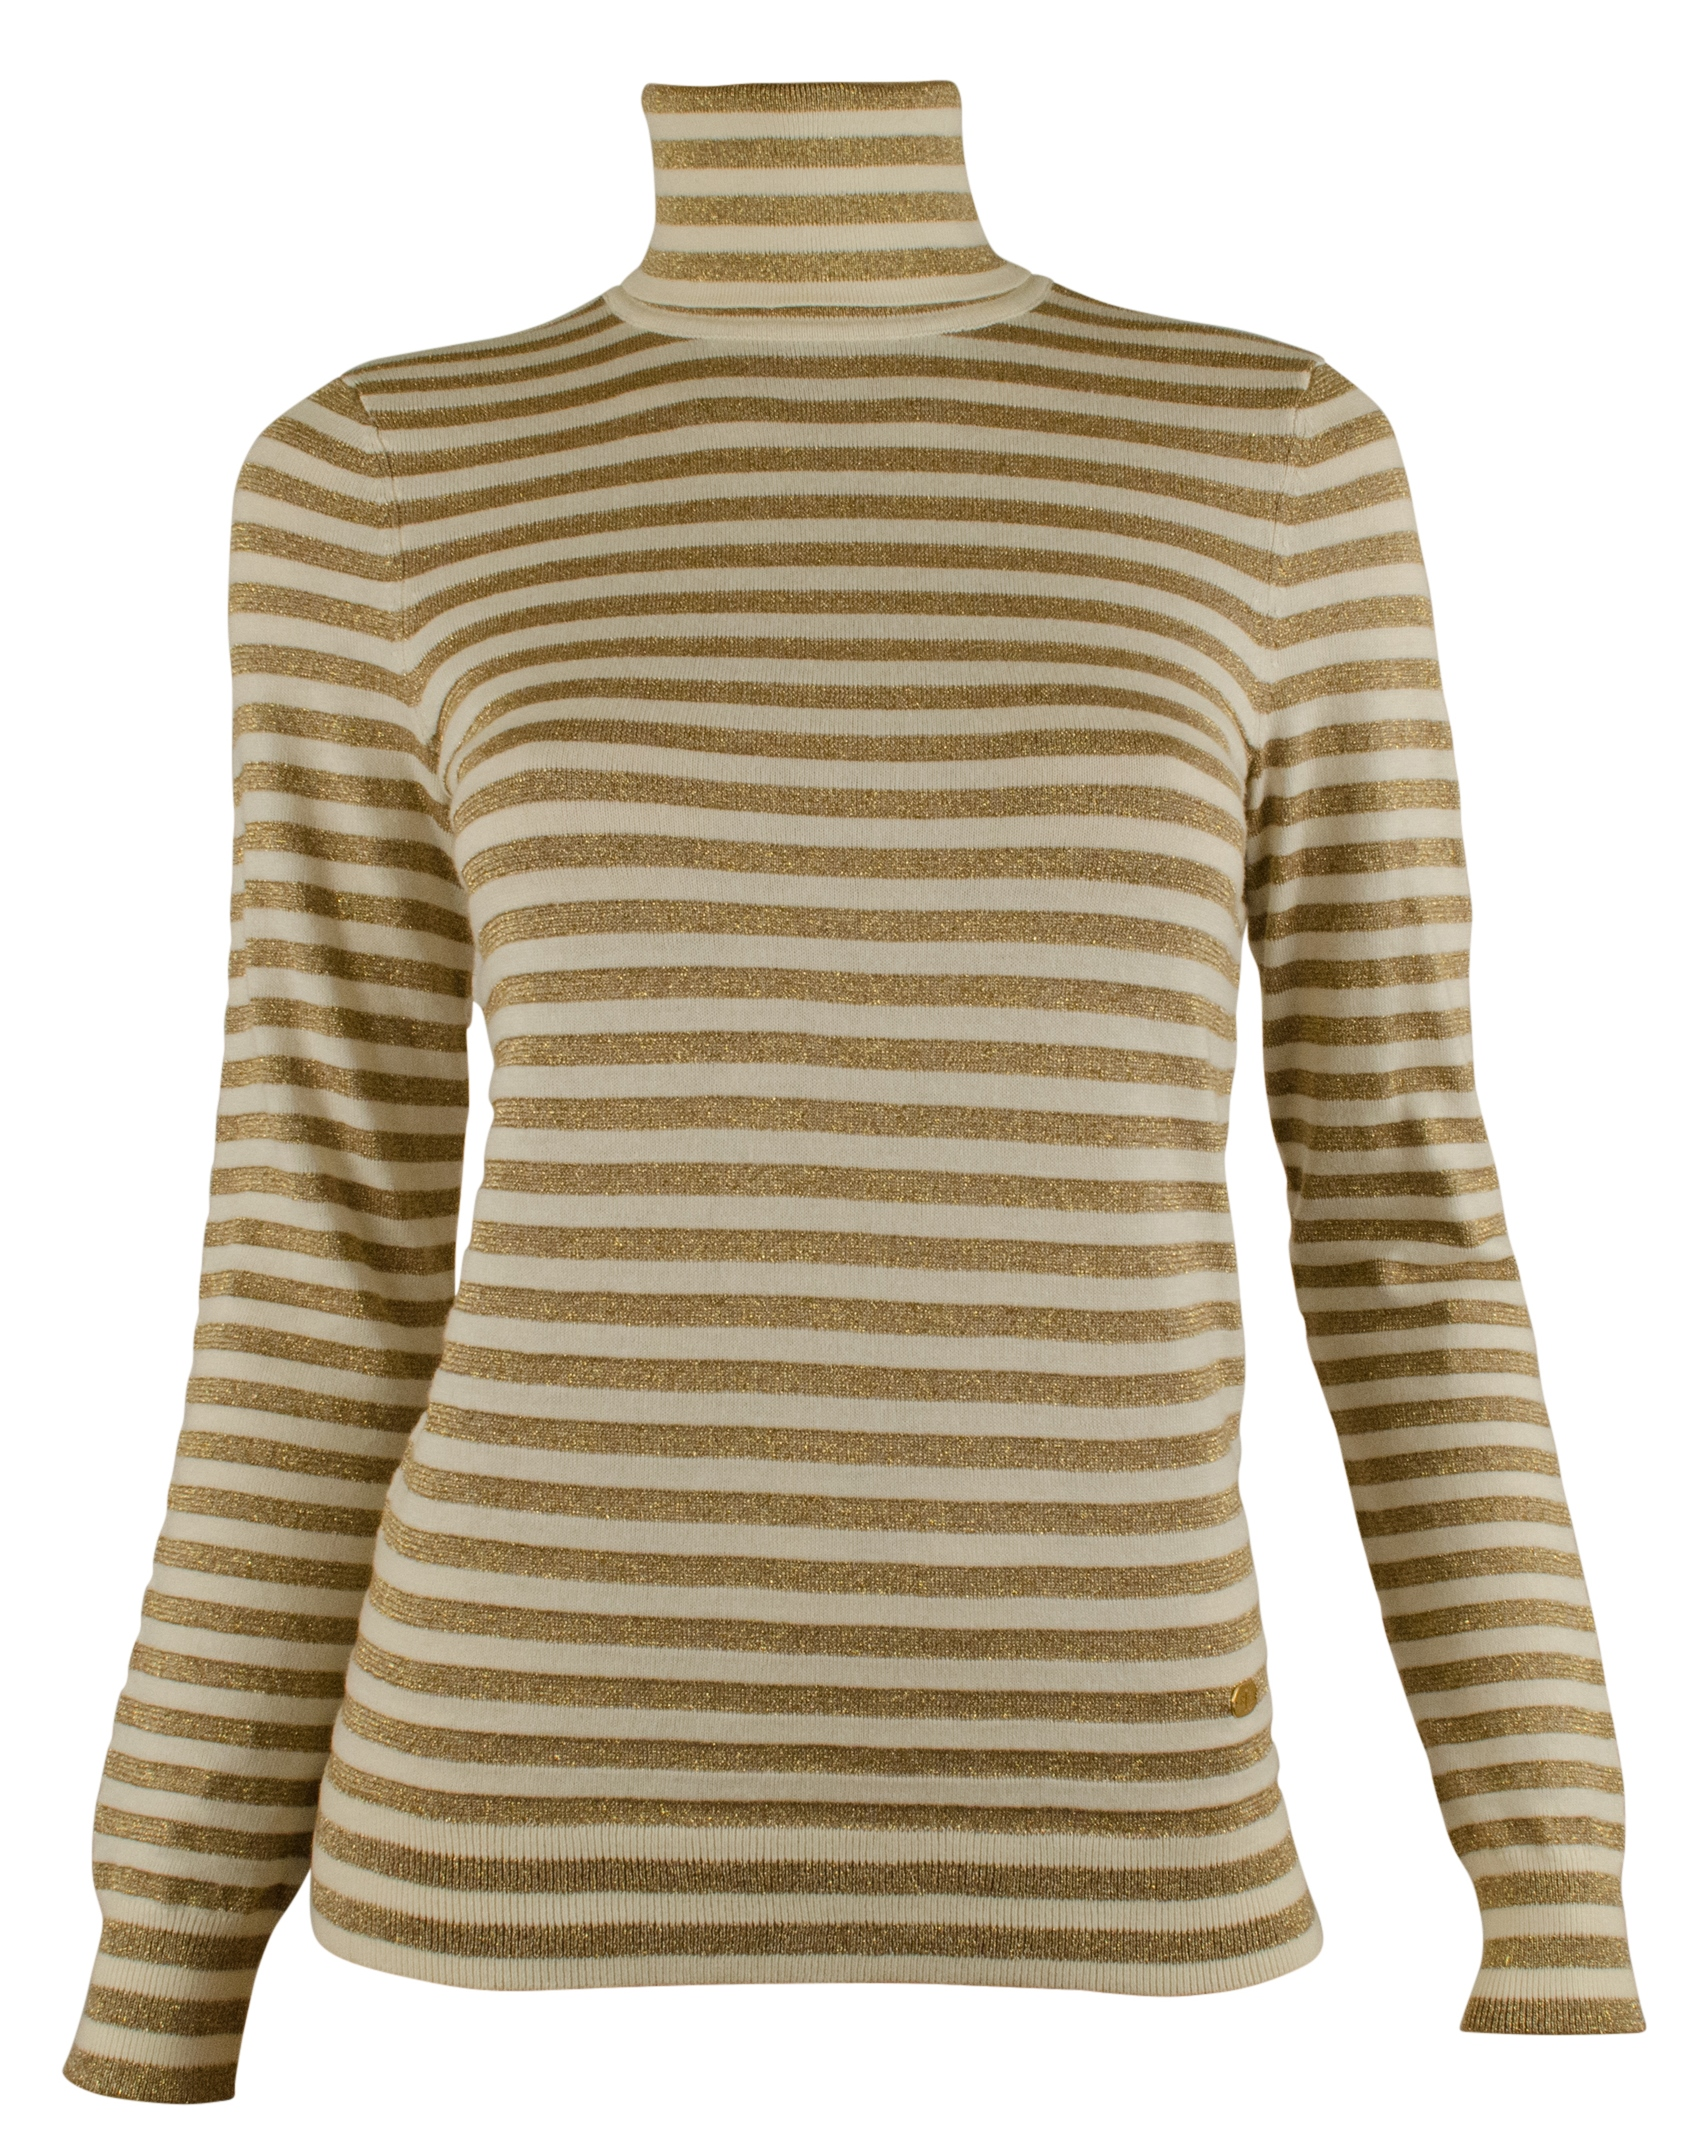 Ralph Lauren Women's Petite Size Metallic-Striped Turtleneck ...